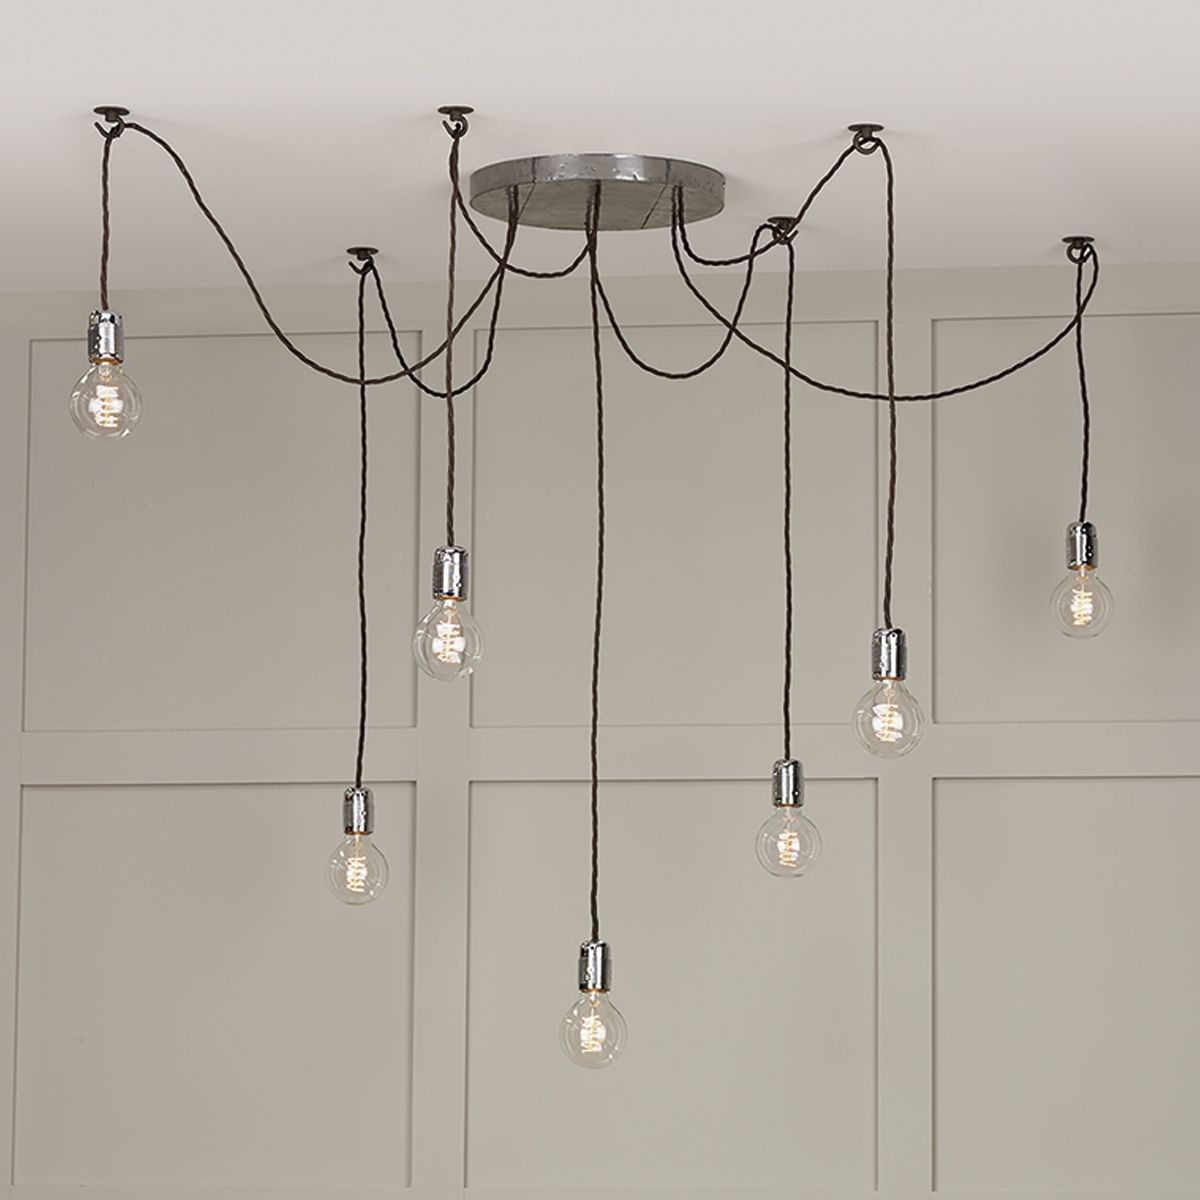 Huckleberry light cluster pendant lead grey study design board